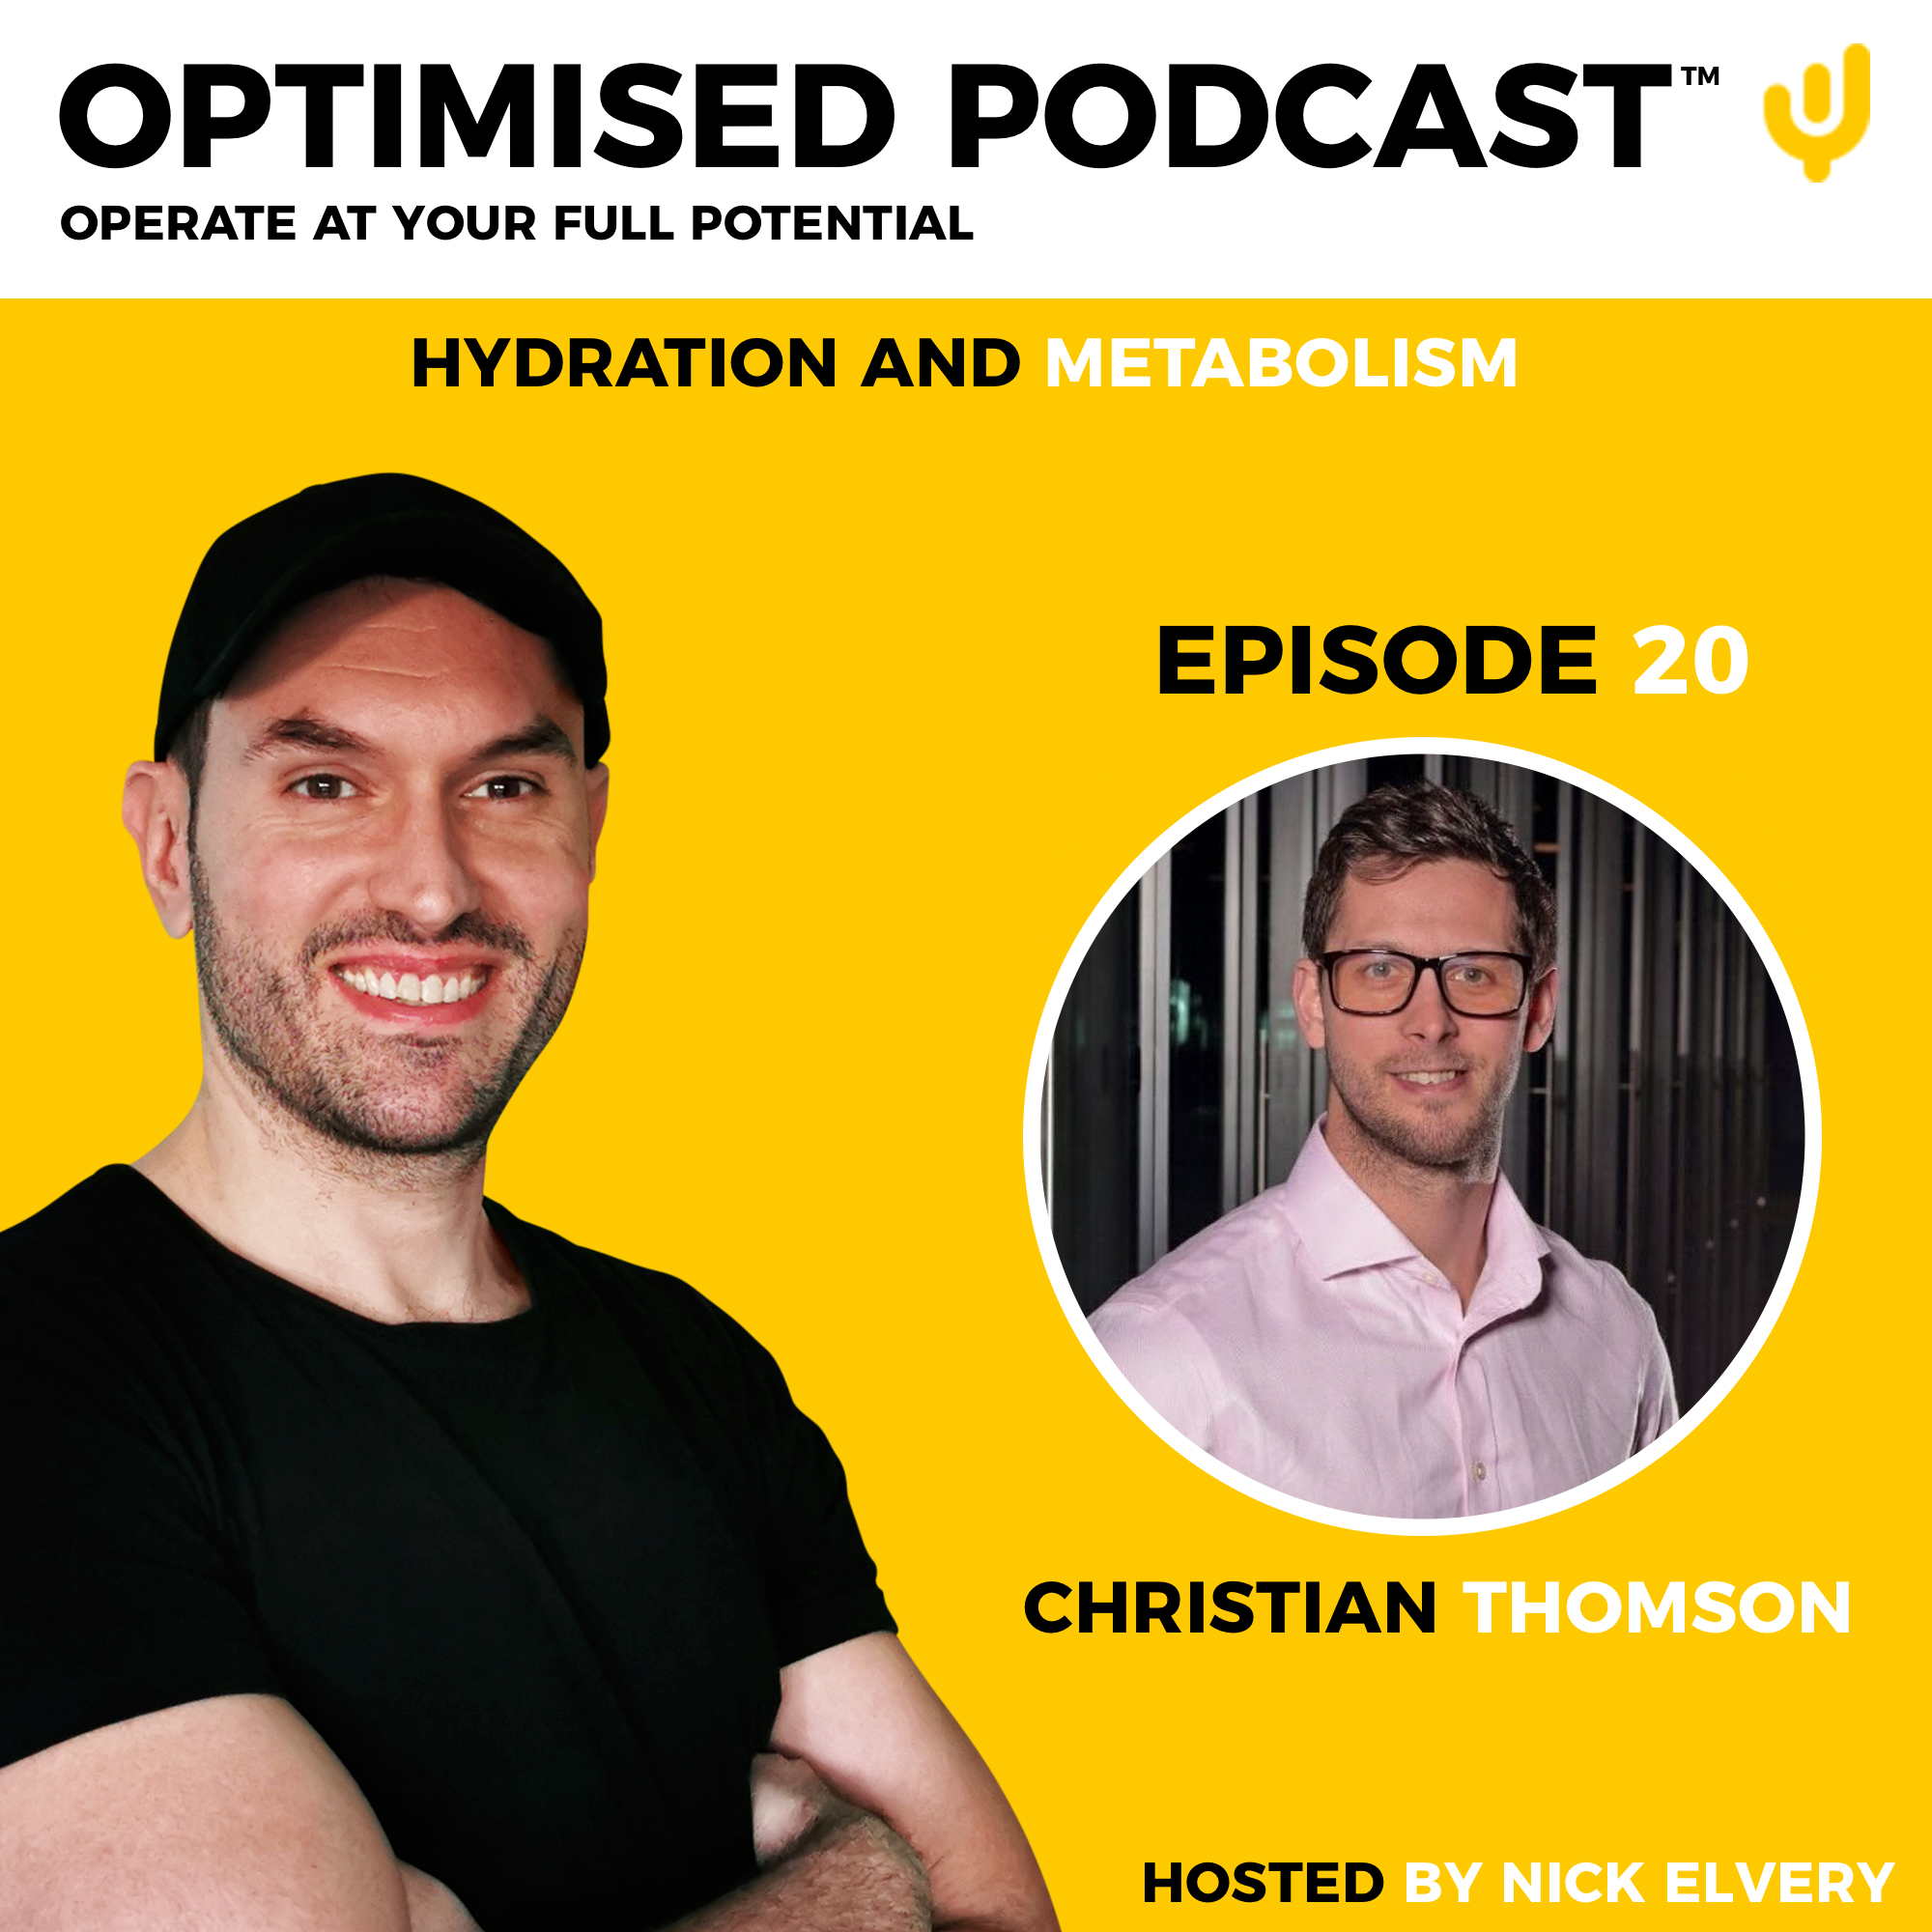 #20 – Hydration and Metabolism with Christian Thomson